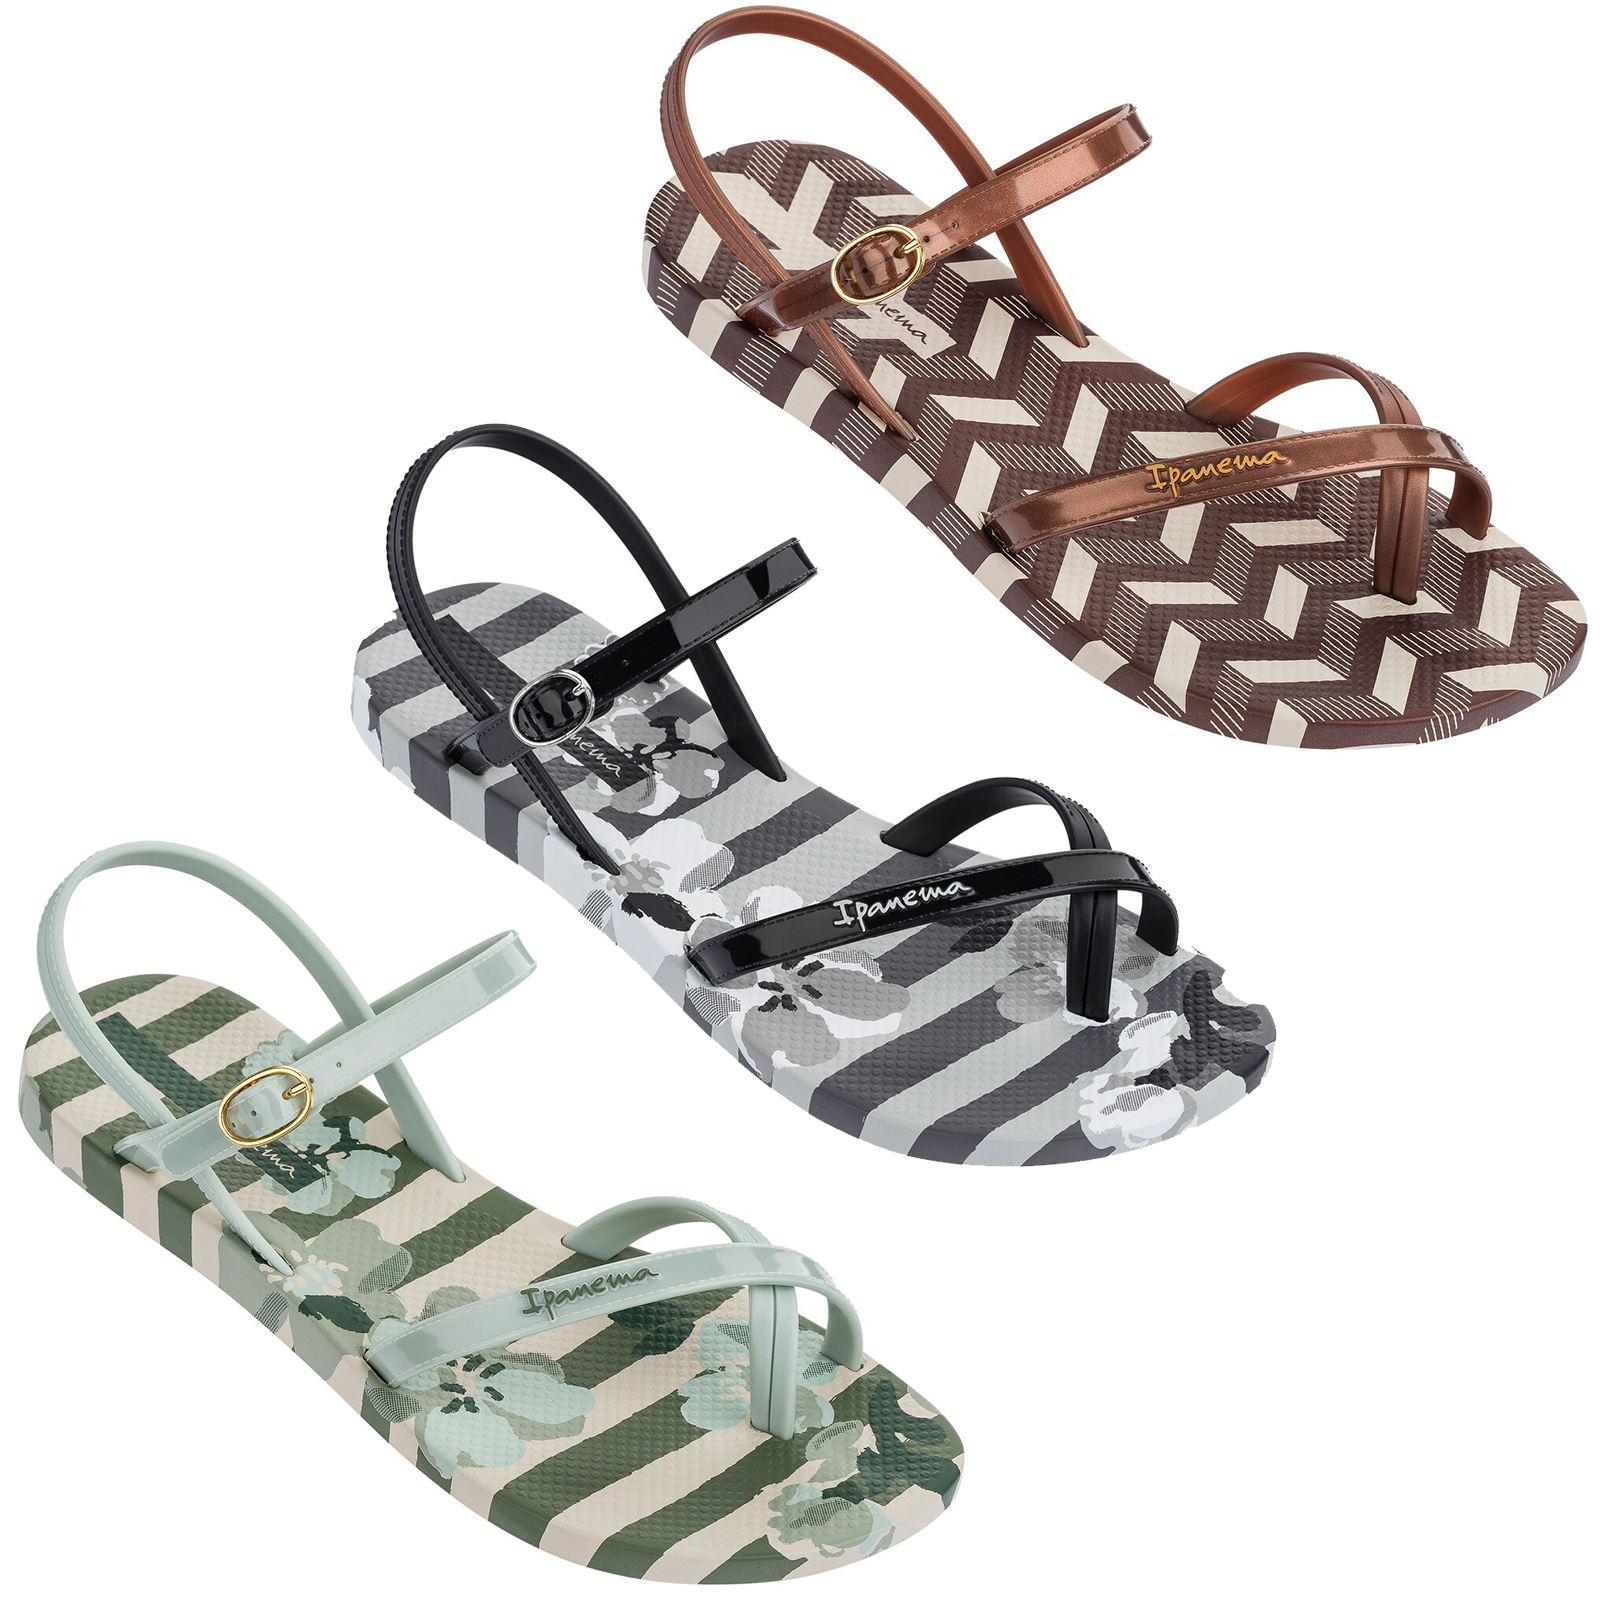 3f16925d6b78 Details about Ipanema Fashion Sandals in Black